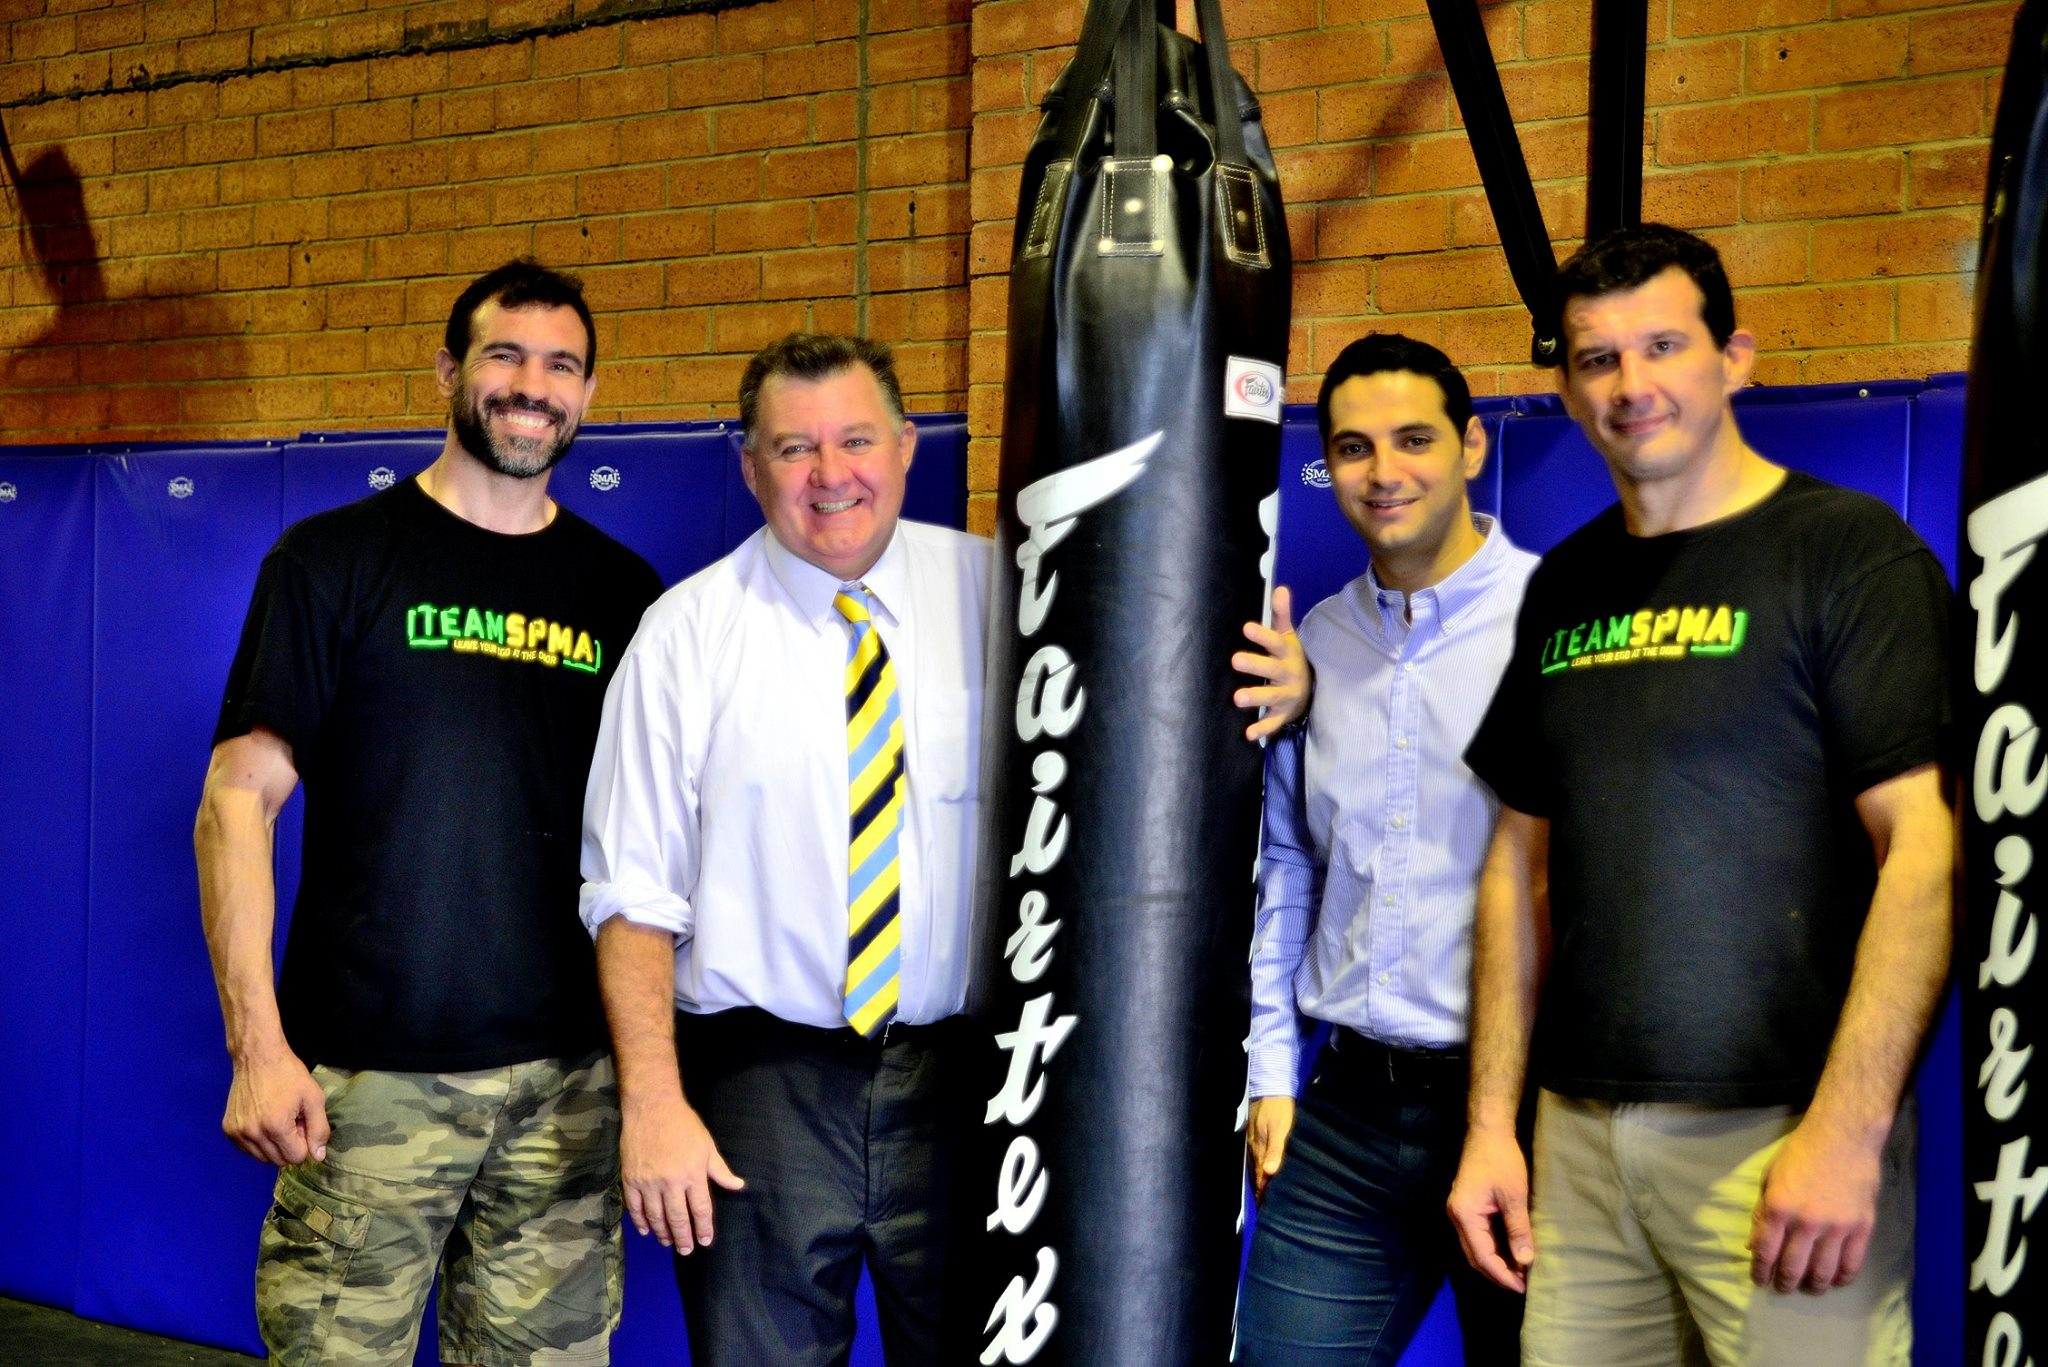 Moorebank MMA BJJ Kickboxing Gym Grand Reopening group shot